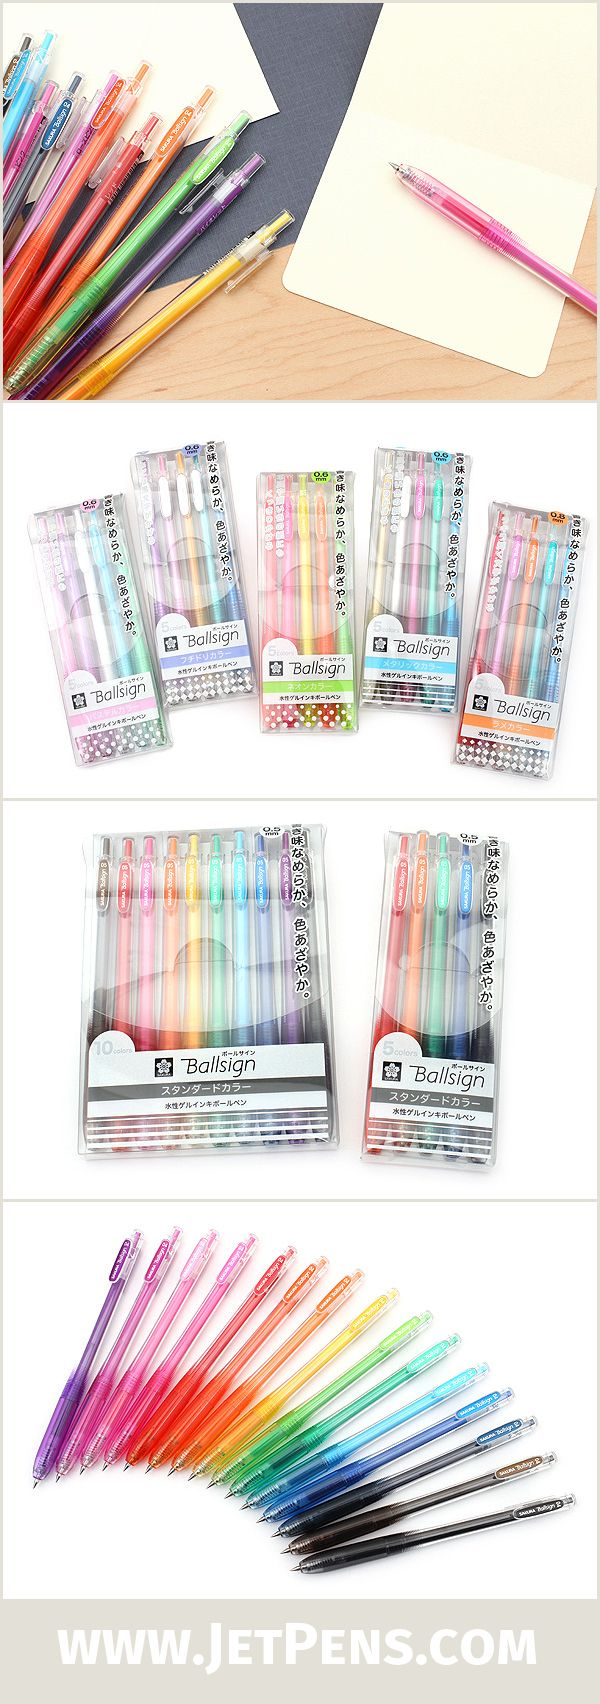 New colors and sets of the Sakura Ballsign Knock Gel Pens are here! They are now available in a wider 0.5 mm size, plus new neon, glitter, metallic, and pastel colors.